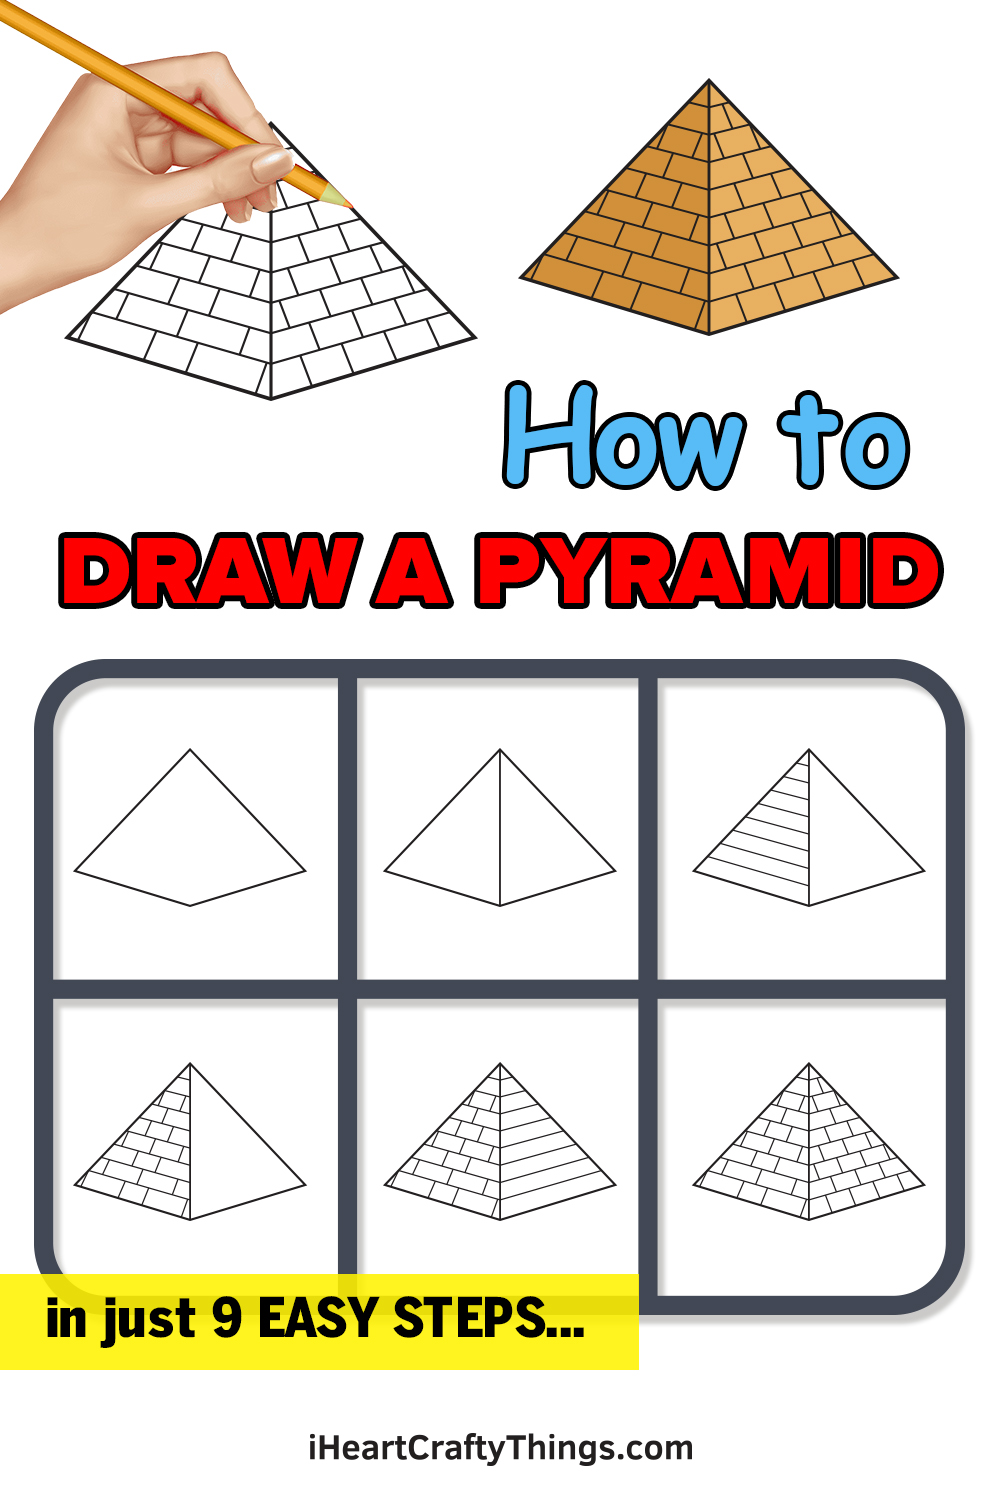 how to draw a pyramid in 9 easy steps